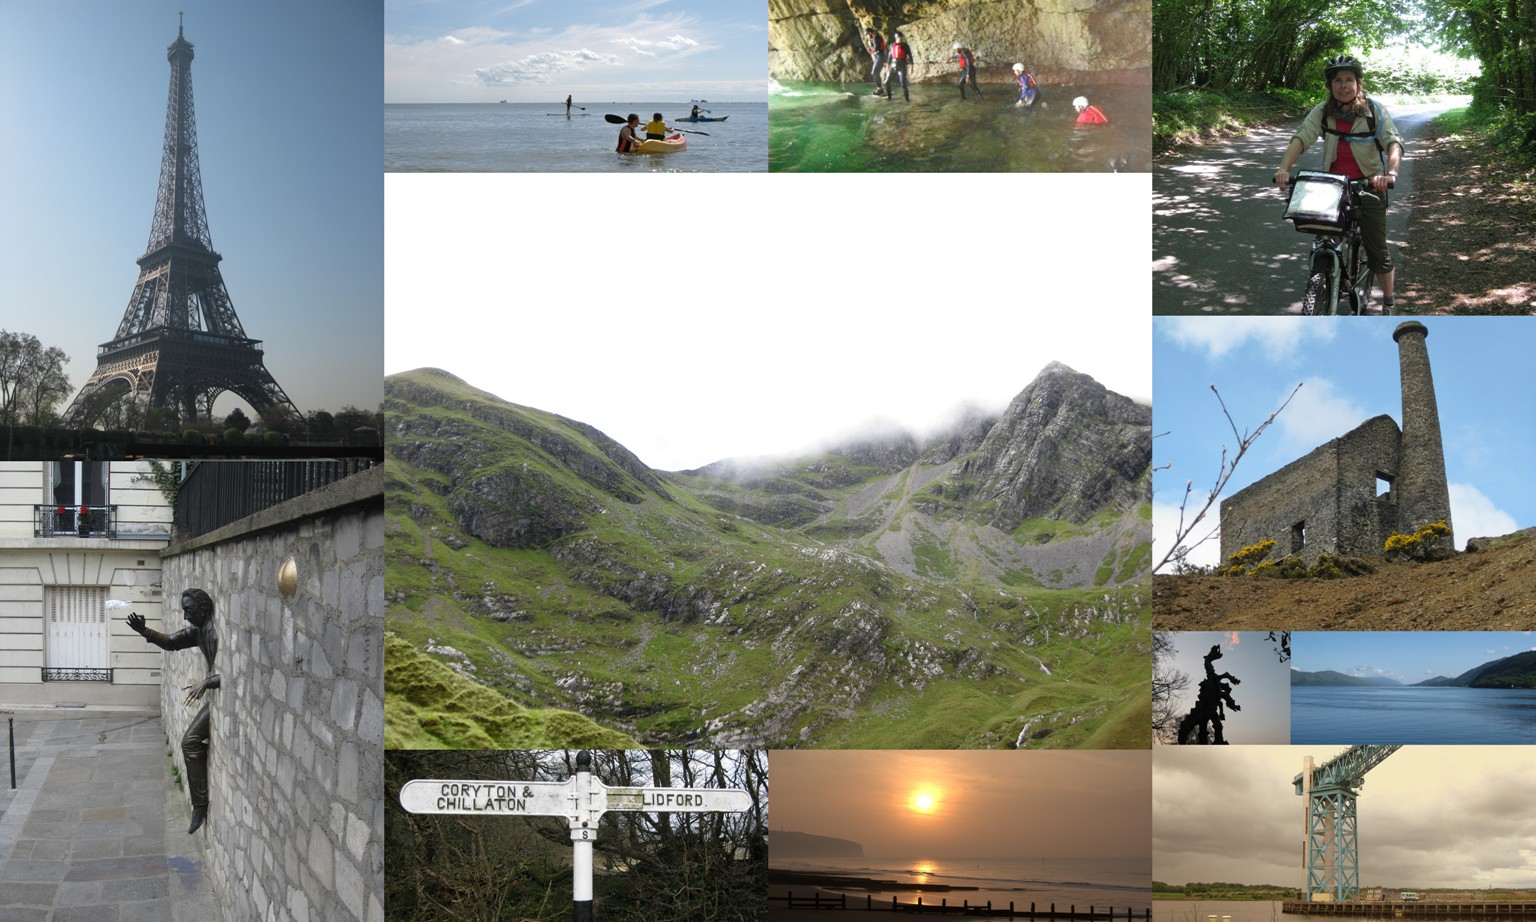 images from our travels. Paris, Kayaking, coasteering, cycling, Krakow, Glasgow, Dartmoor, Scotland